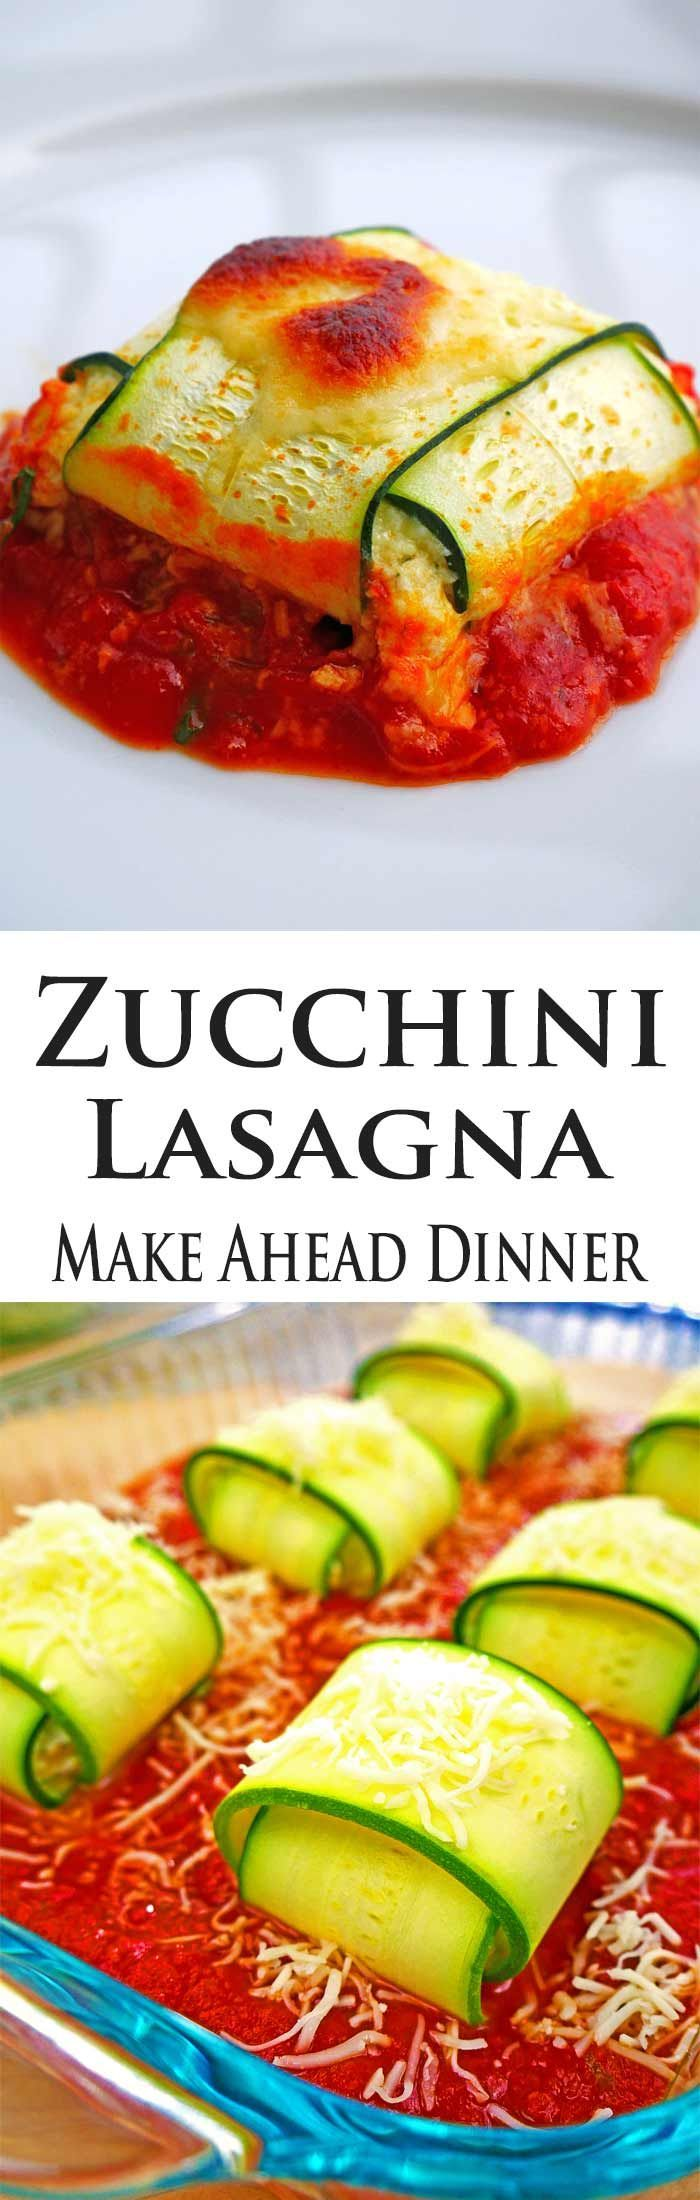 Zucchini Lasagna, the recipe even your kids will eat. The cheesiness makes this dish along with the addition of fresh herbs. Zucchini is super healthy for us and provides great texture when used correctly. The recipe only takes about 10 minutes to prepare. Which makes it the perfect plan ahead weeknight dinner plan meal. https://www.butter-n-thyme.com #zucchini #healthy #healthyeating #livetobe100